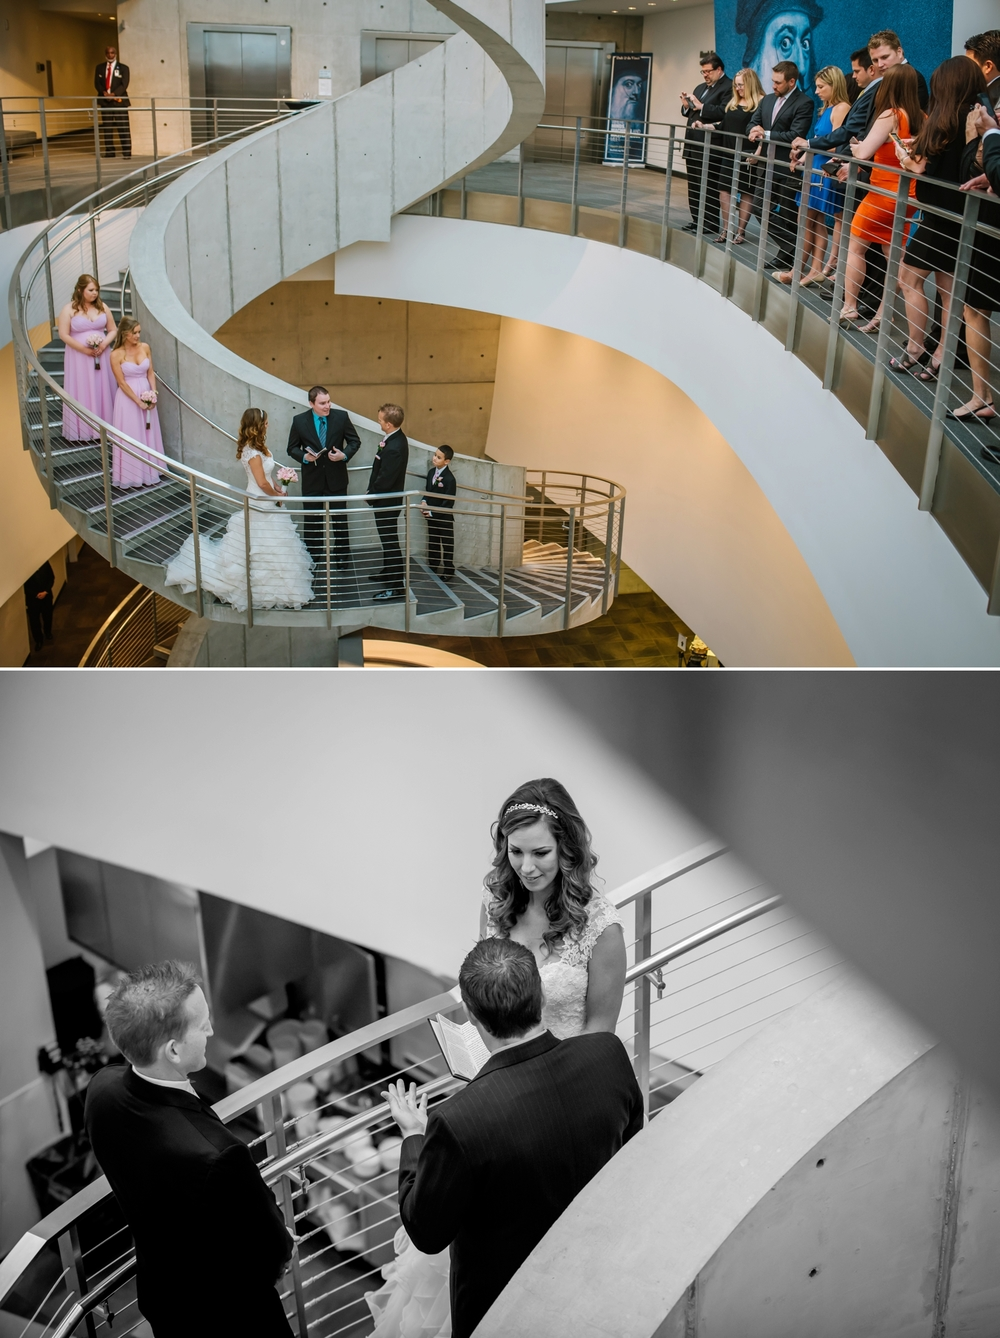 ashlee-hamon-photography-st-pete-salvador-dali-museum-wedding_0016.jpg